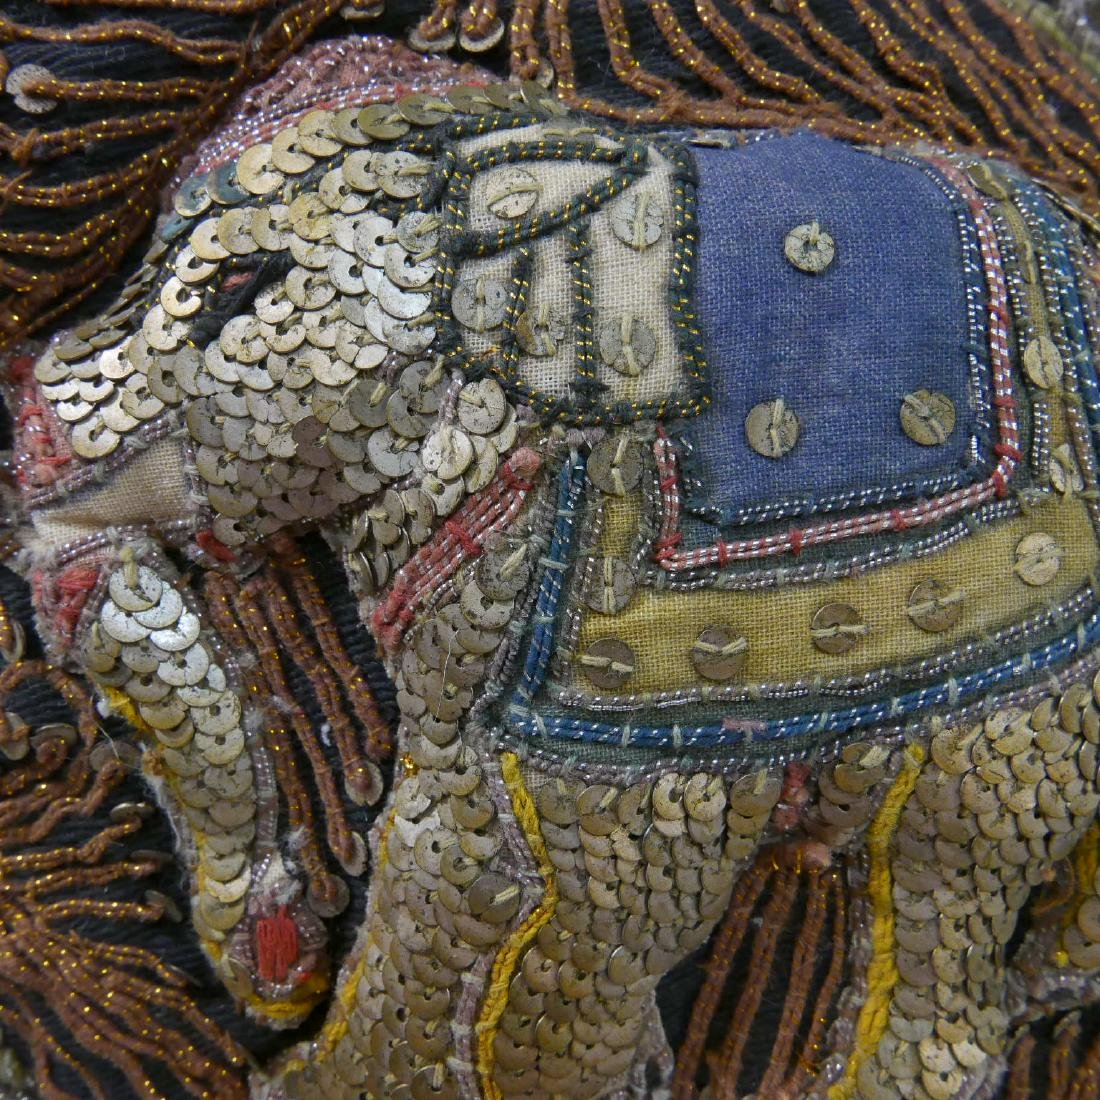 ANTIQUE INDIAN ELEPHANT EMBROIDERY - 6